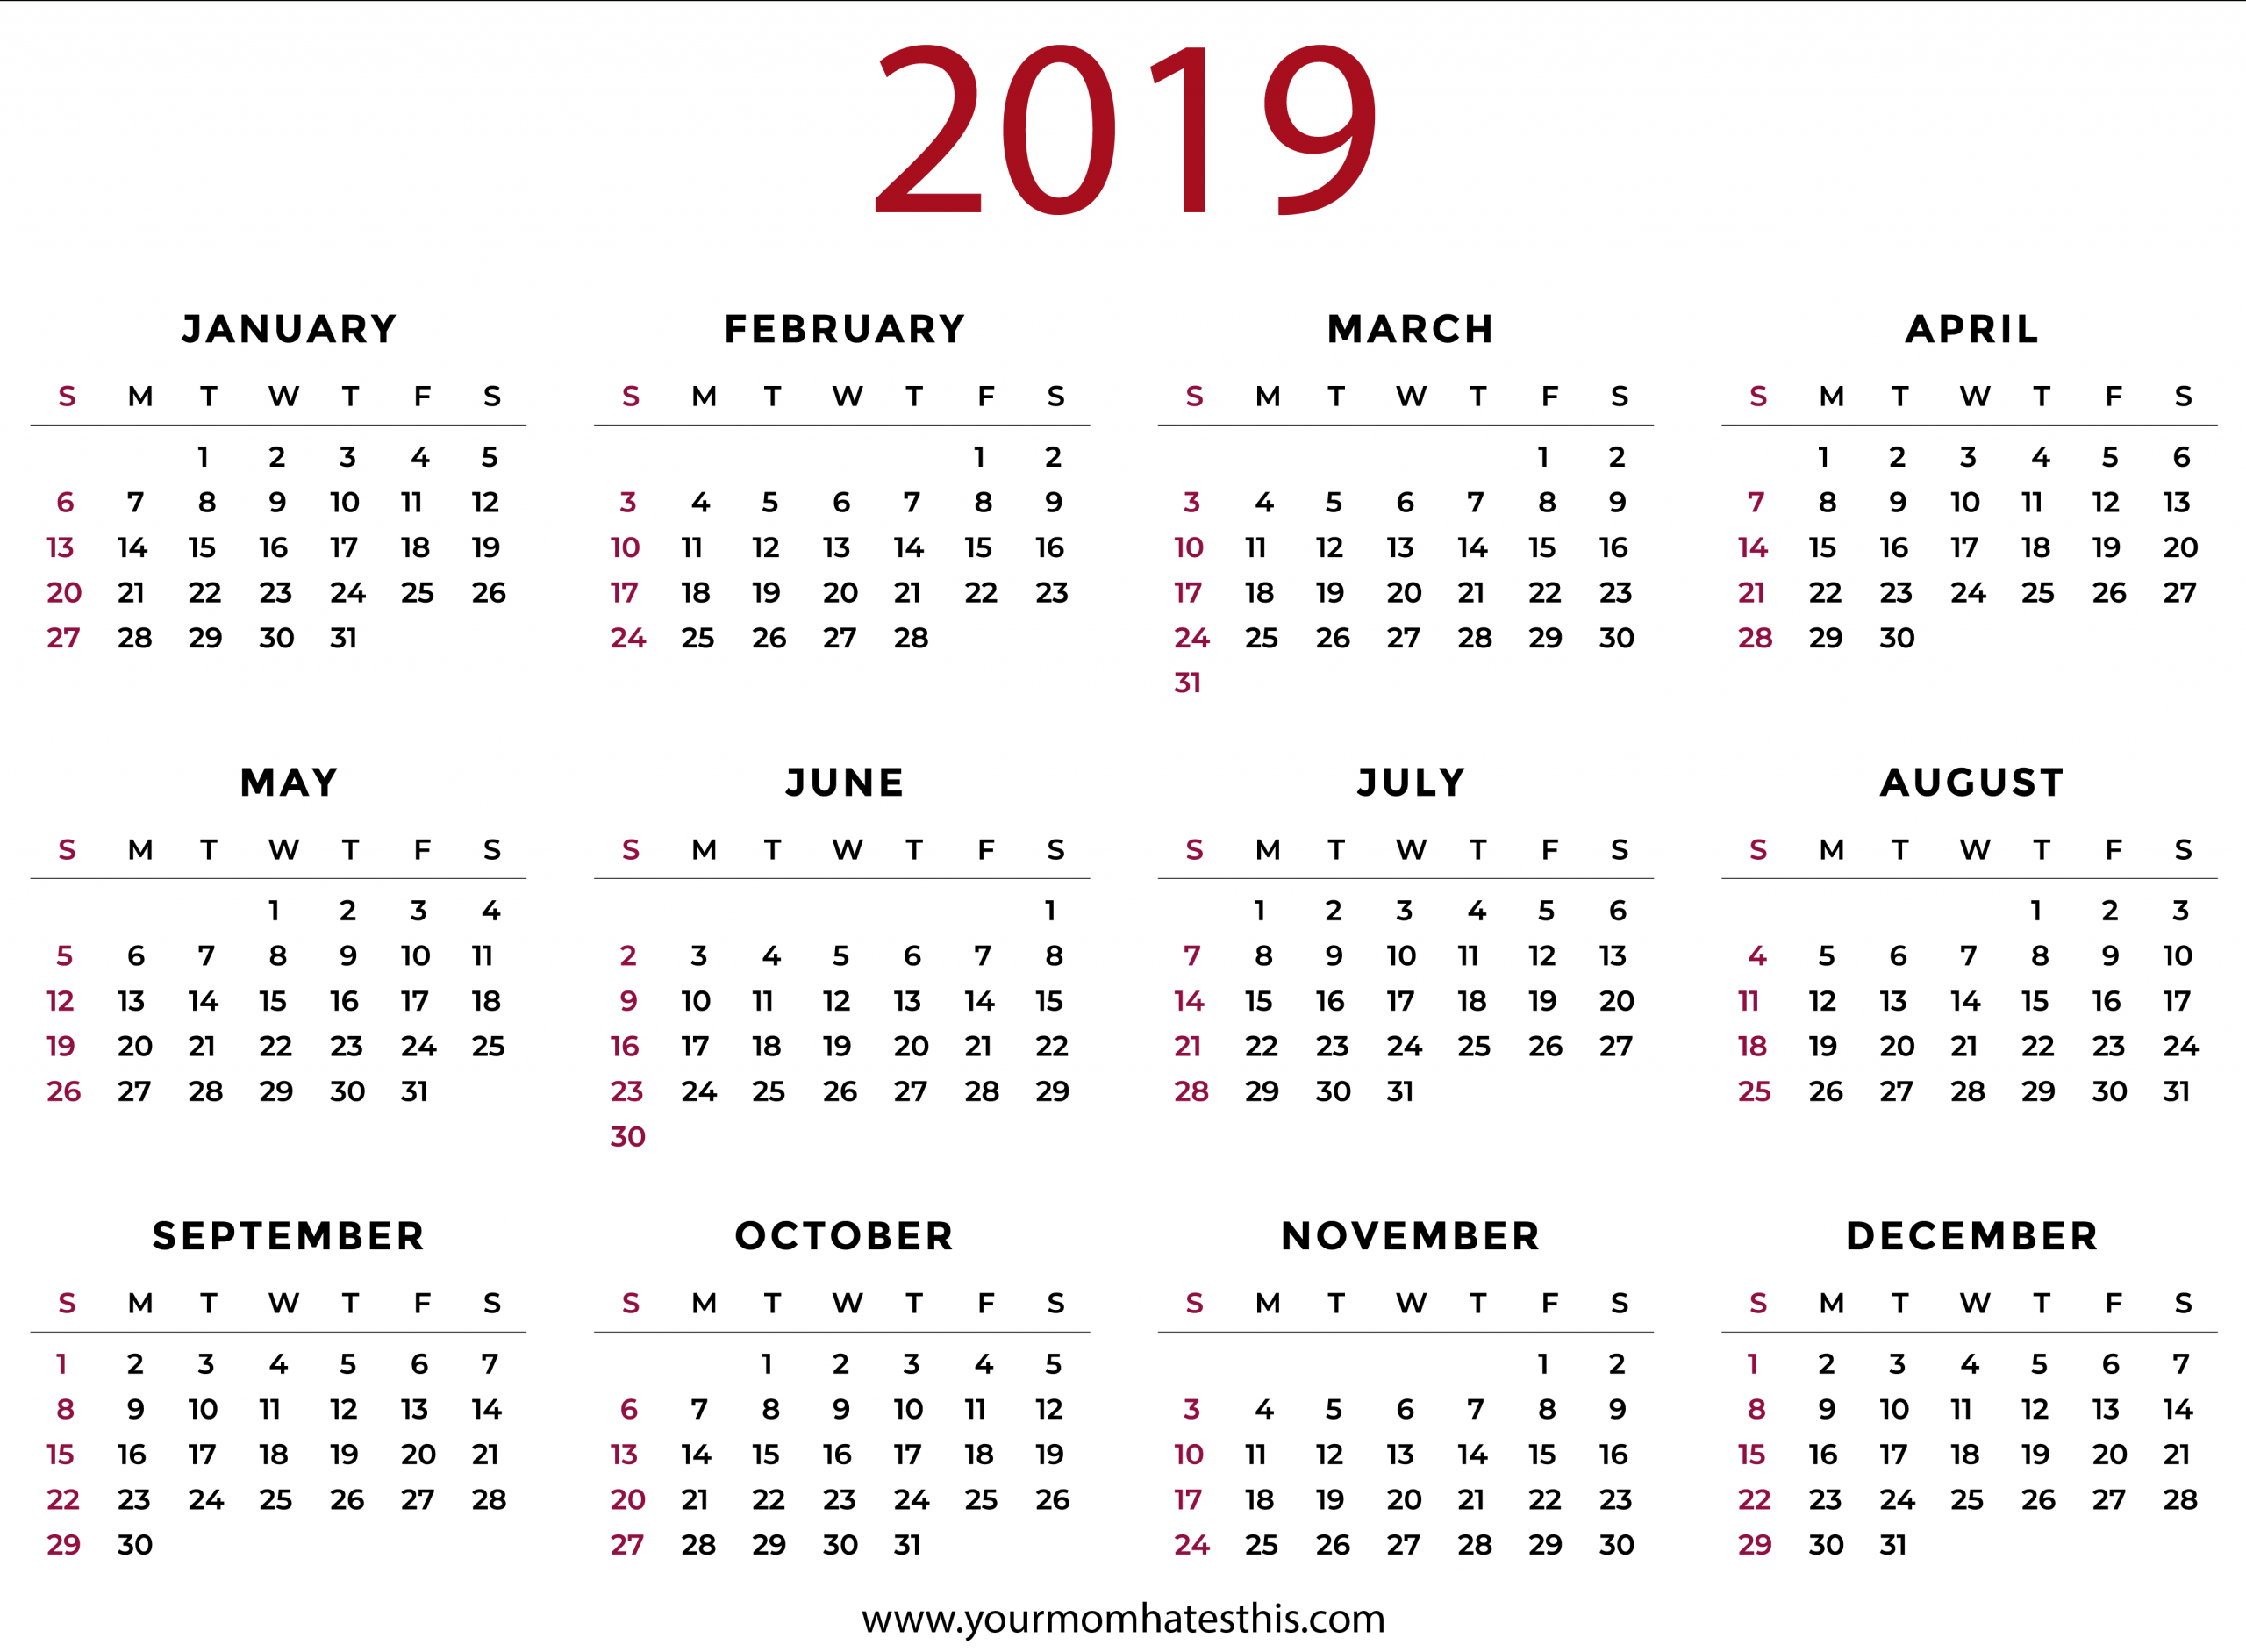 2019 Calendars Download Pdf Templates Image Of Month Calendar